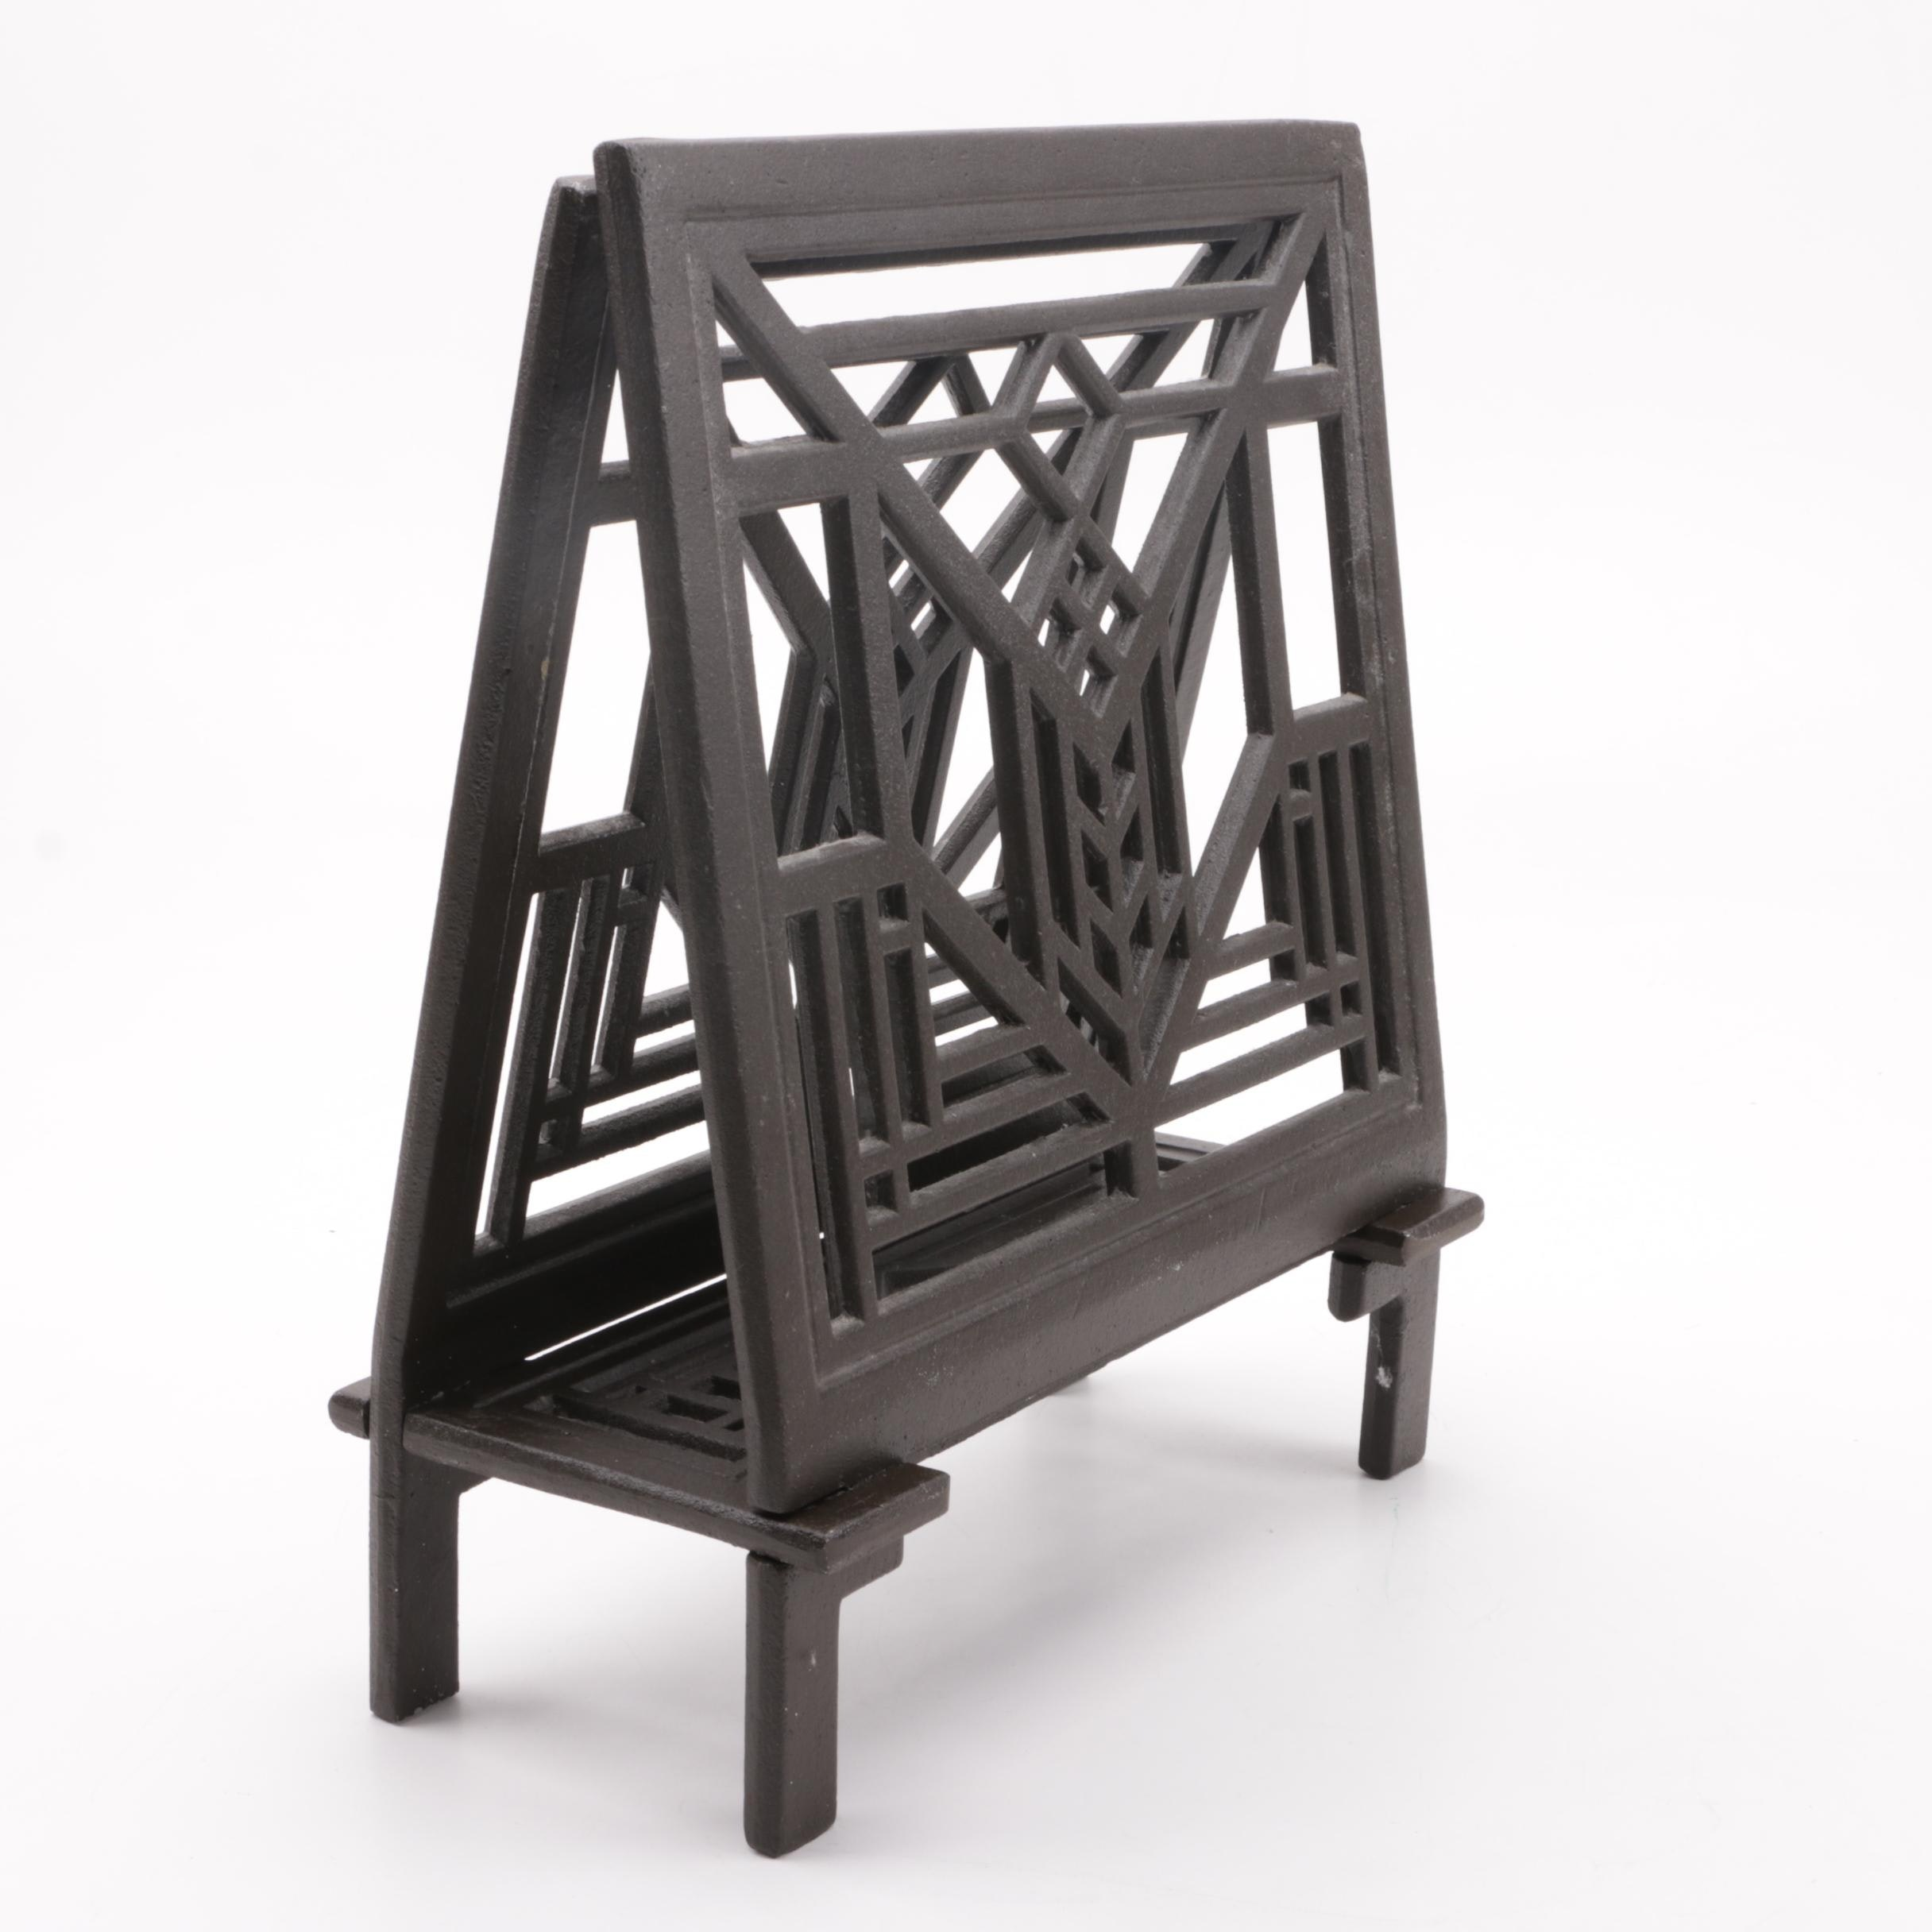 Cast Iron Magazine Holder